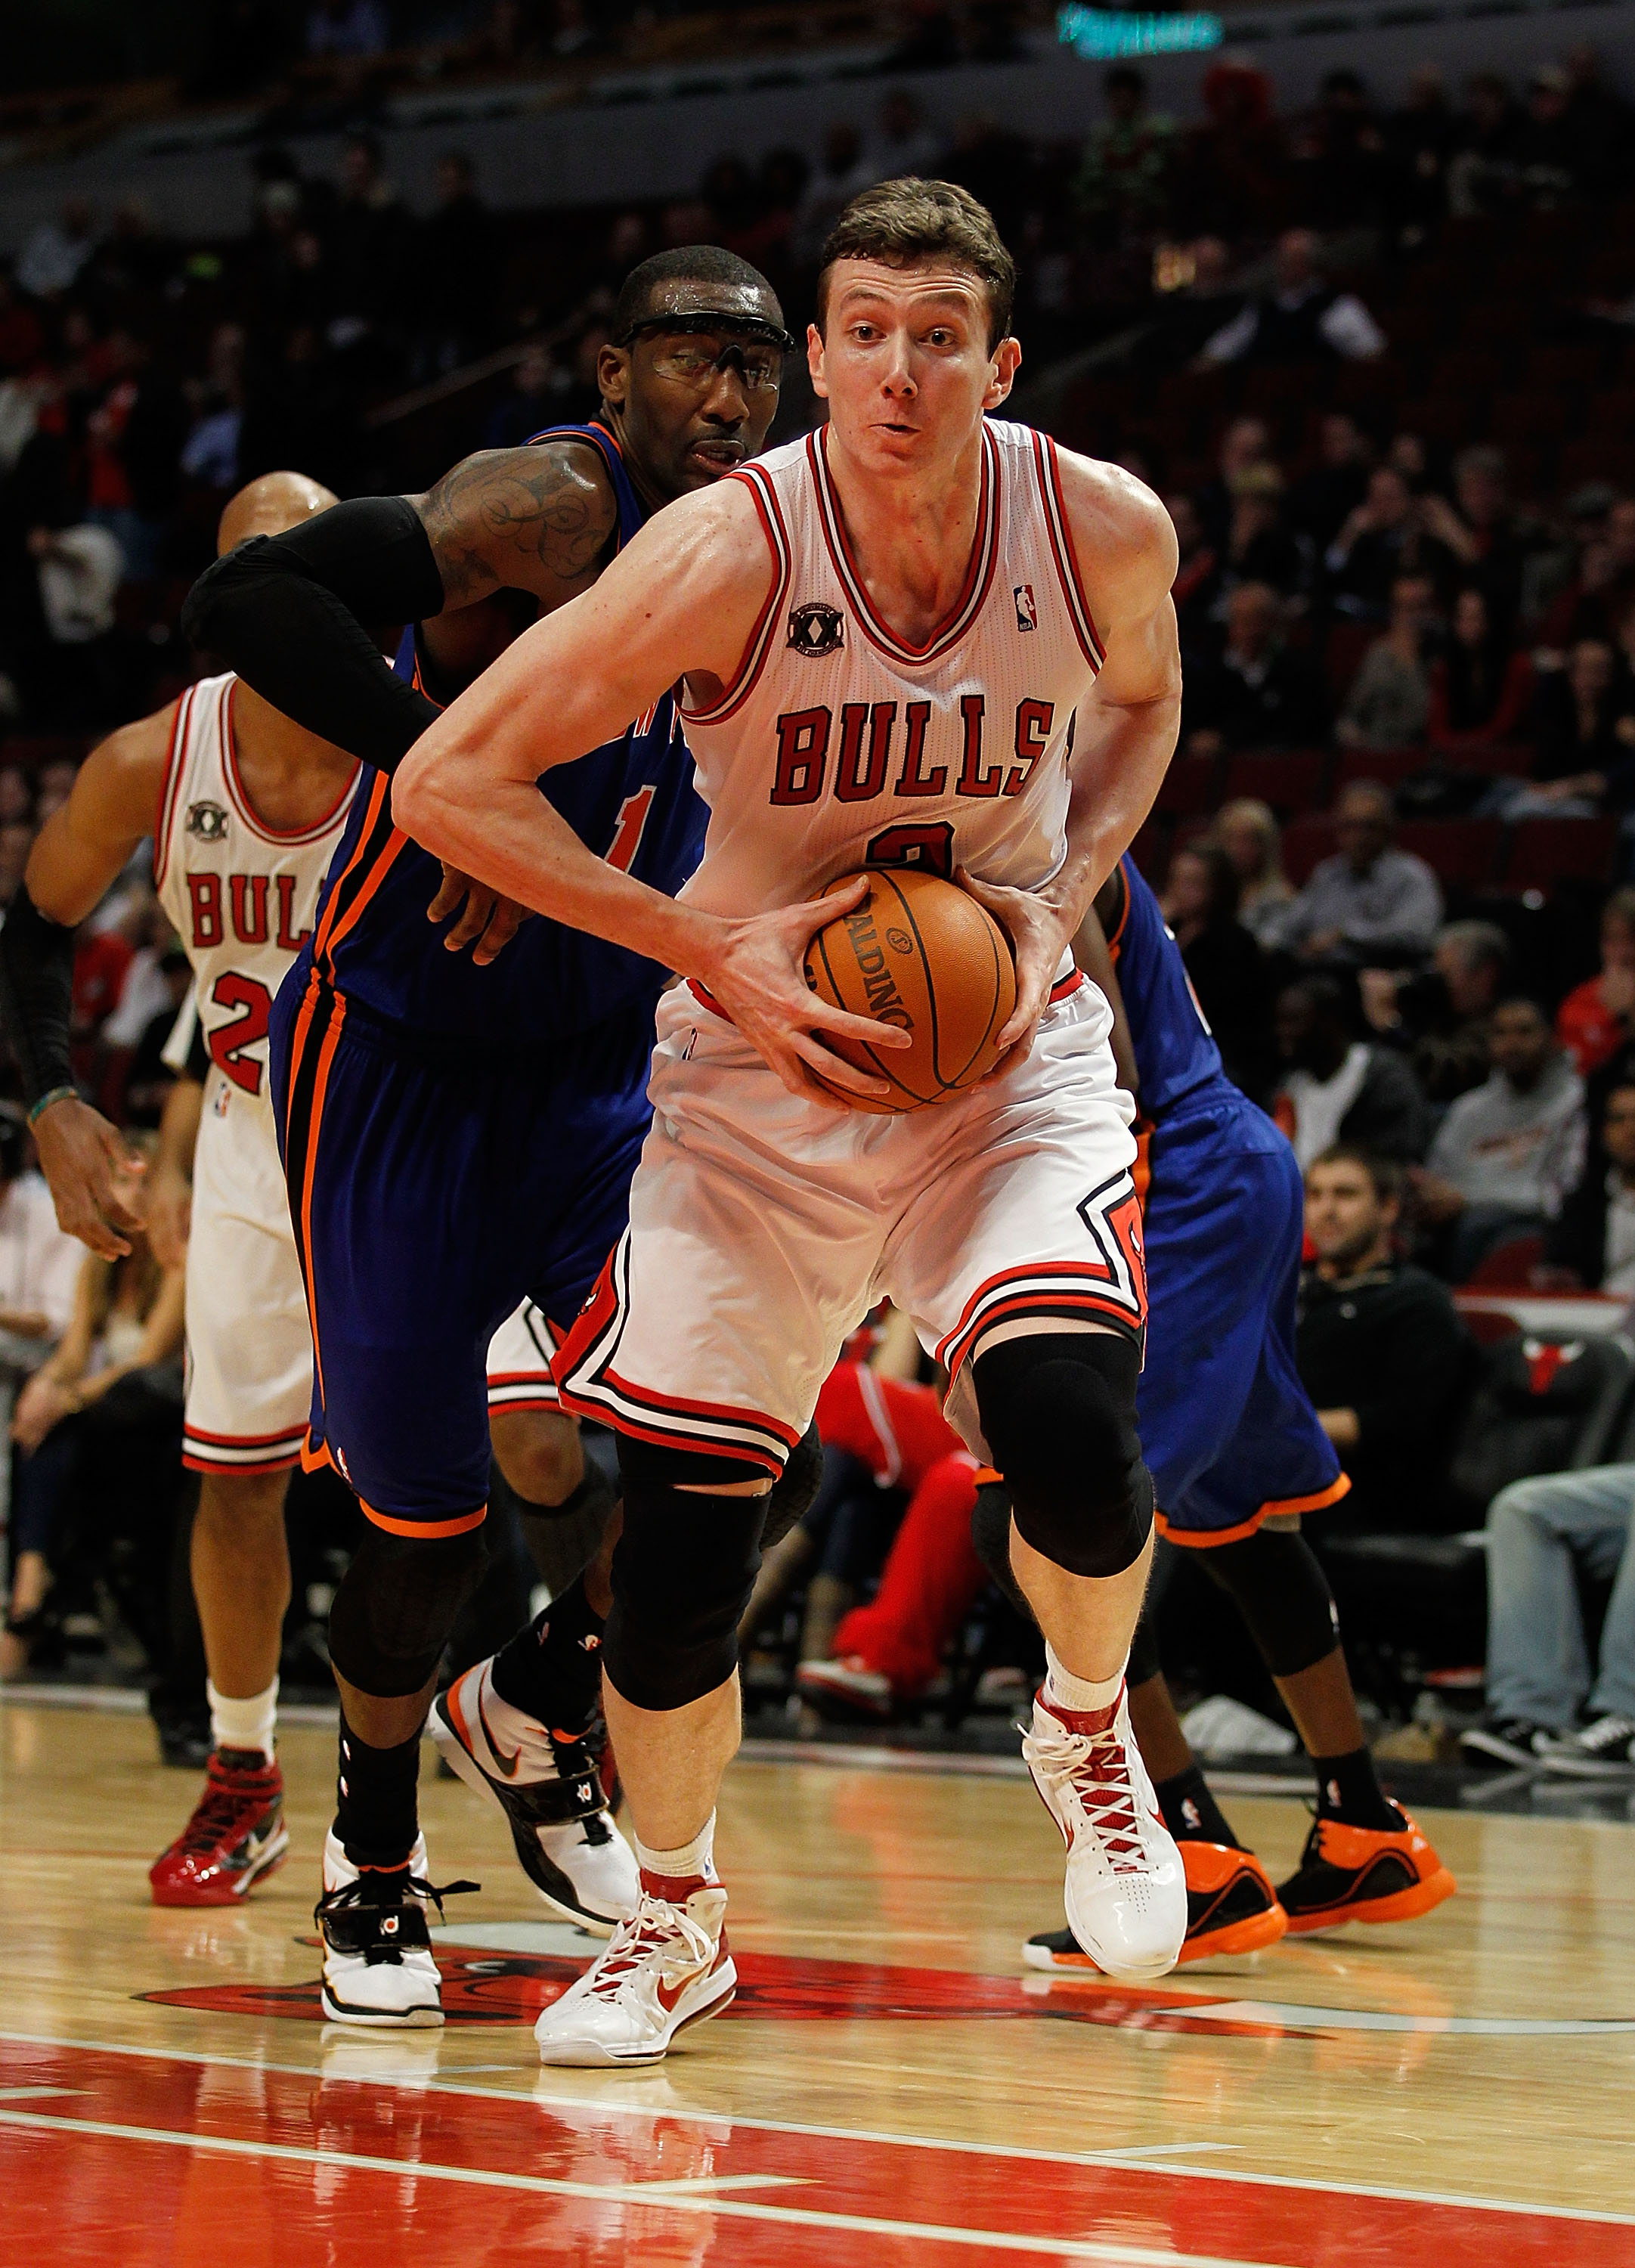 CHICAGO - NOVEMBER 04: Omer Asik #3 of the Chicago Bulls goes up for a dunk past Amar'e Stoudemire #1 of the New York Knicks at the United Center on November 4, 2010 in Chicago, Illinois. The Knicks defeated the Bulls 120-112. NOTE TO USER: User expressly